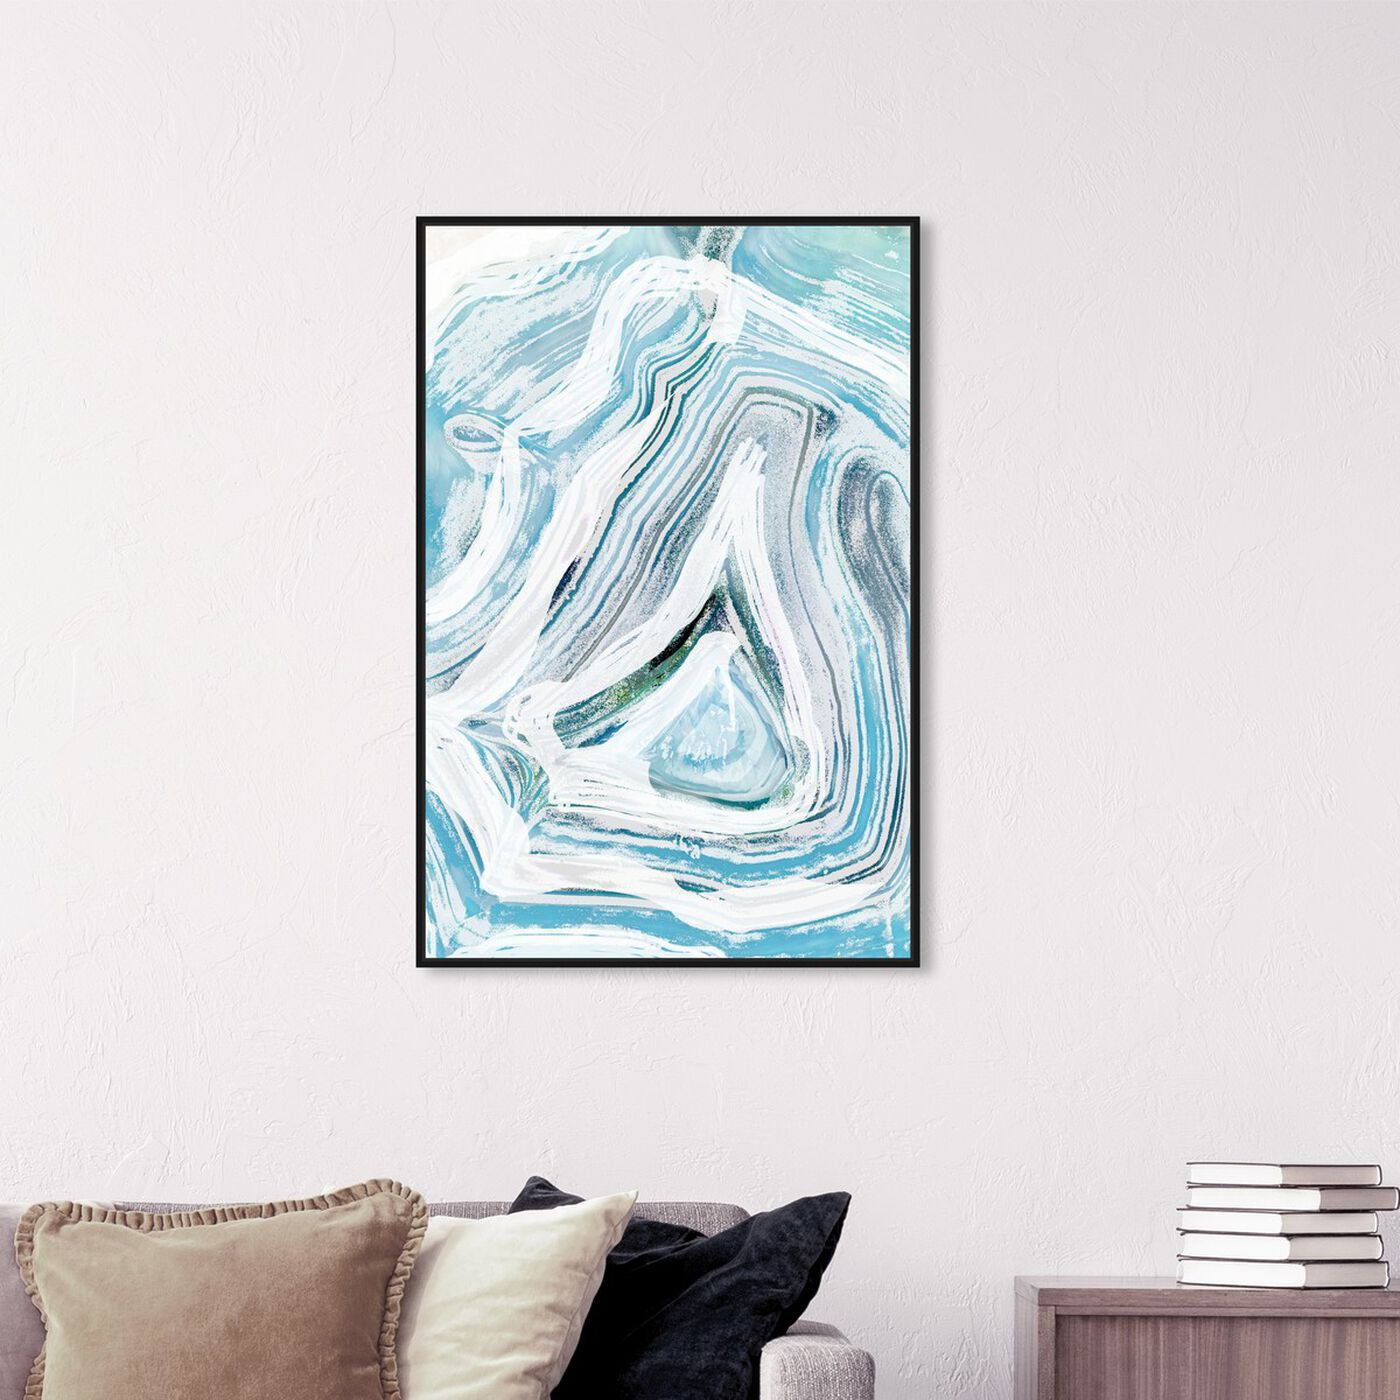 Hanging view of Iced Geo featuring abstract and crystals art.